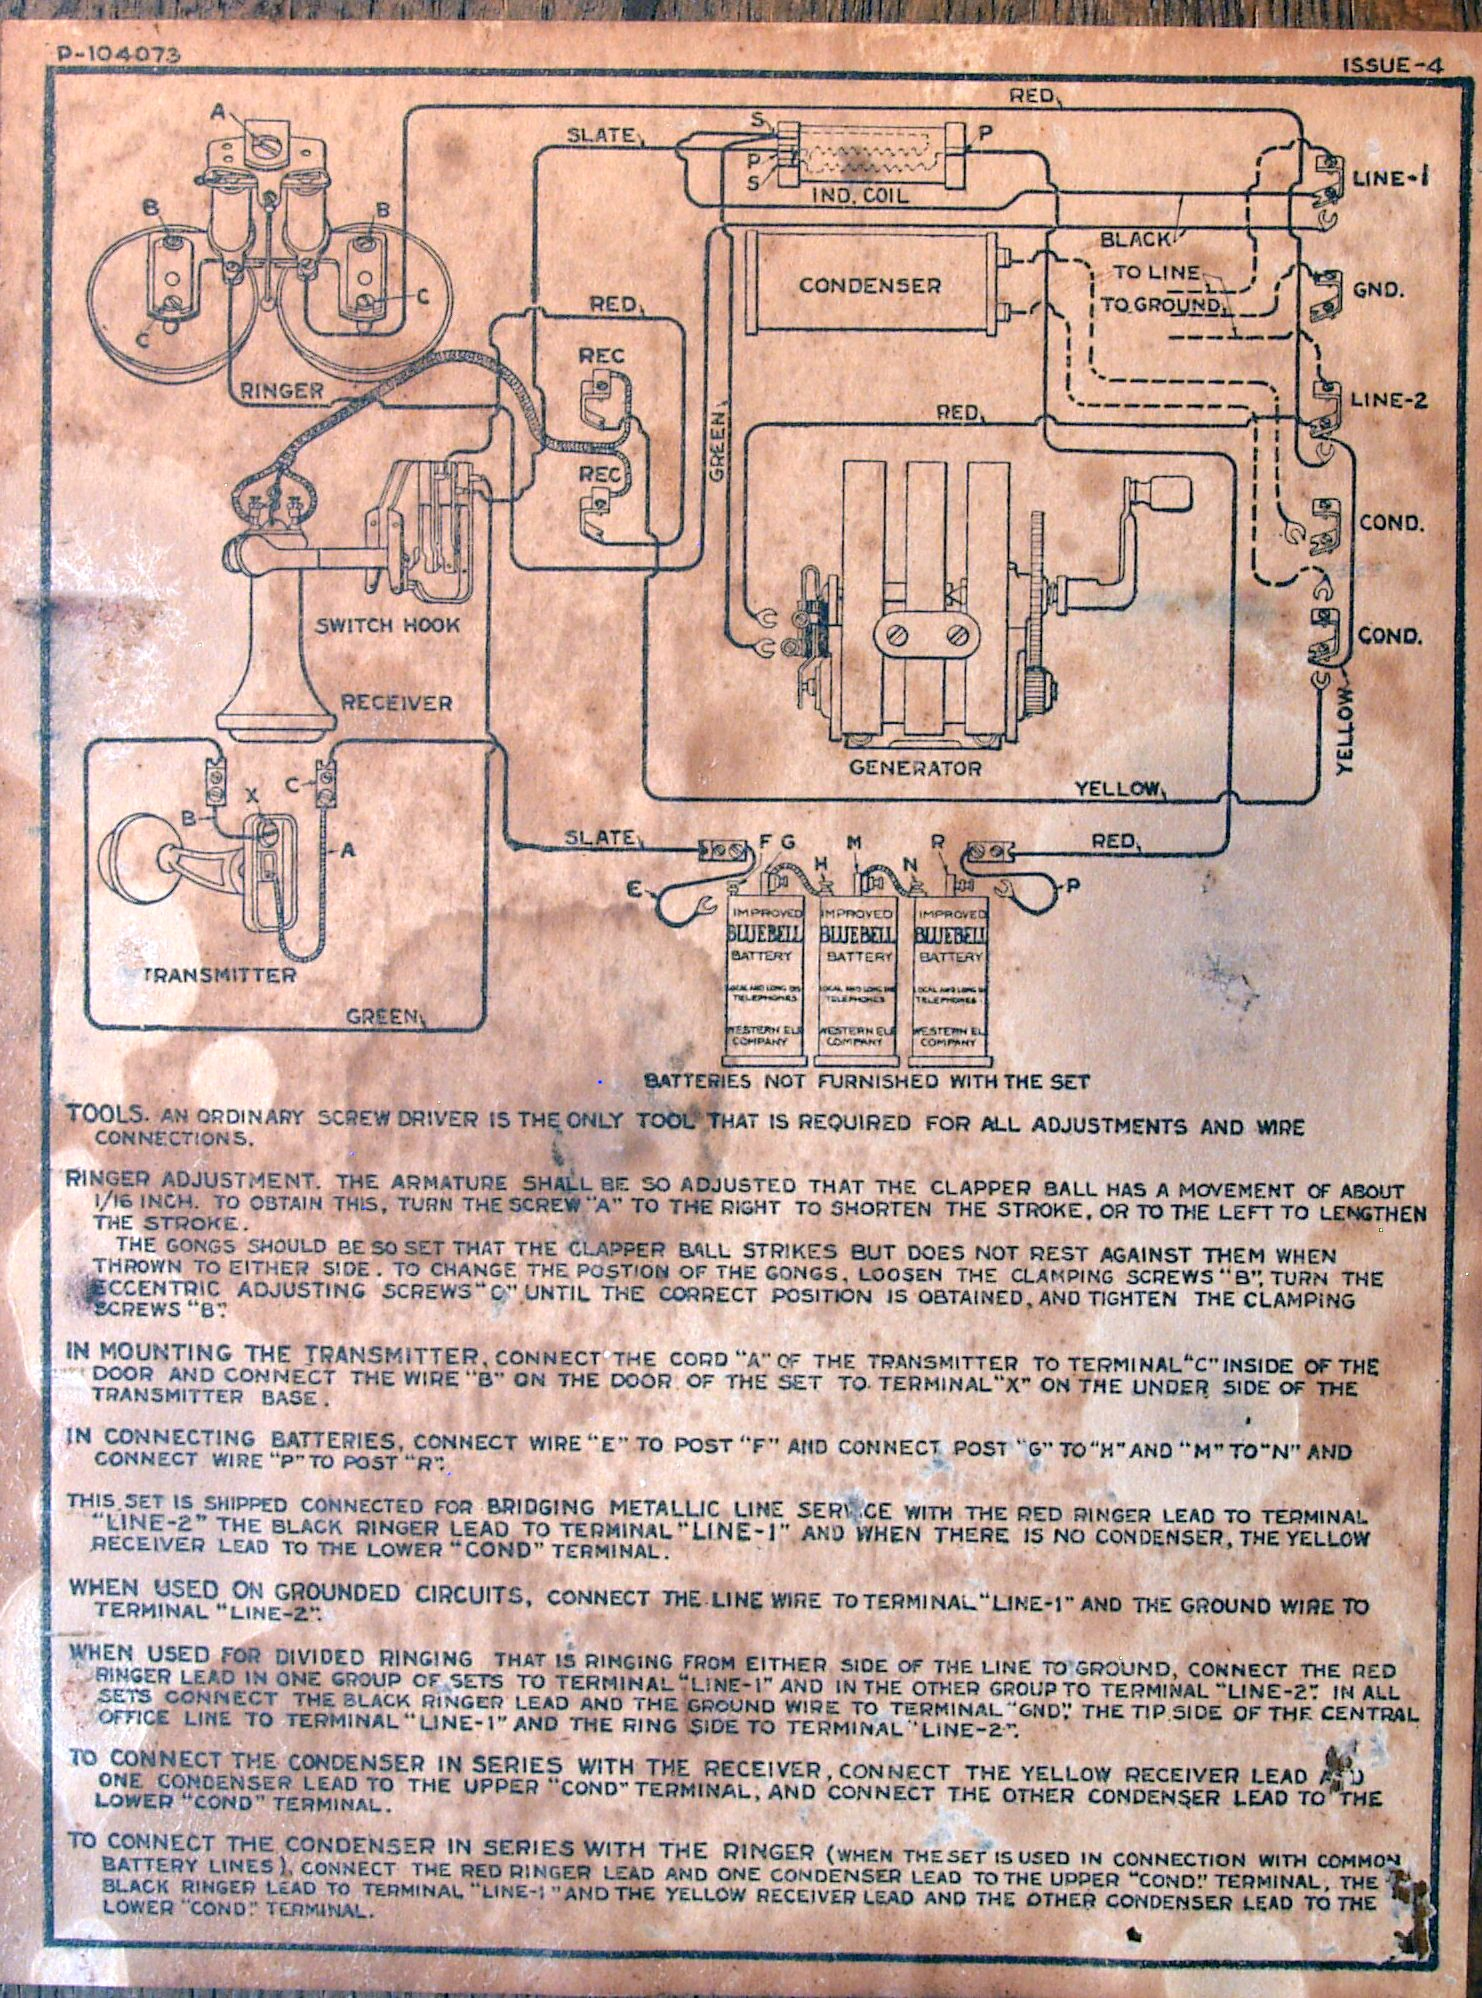 WE_Wall_Phone_Schematic diagrams old telephone wiring diagram bell old rotary phone kellogg telephone wiring diagram at crackthecode.co